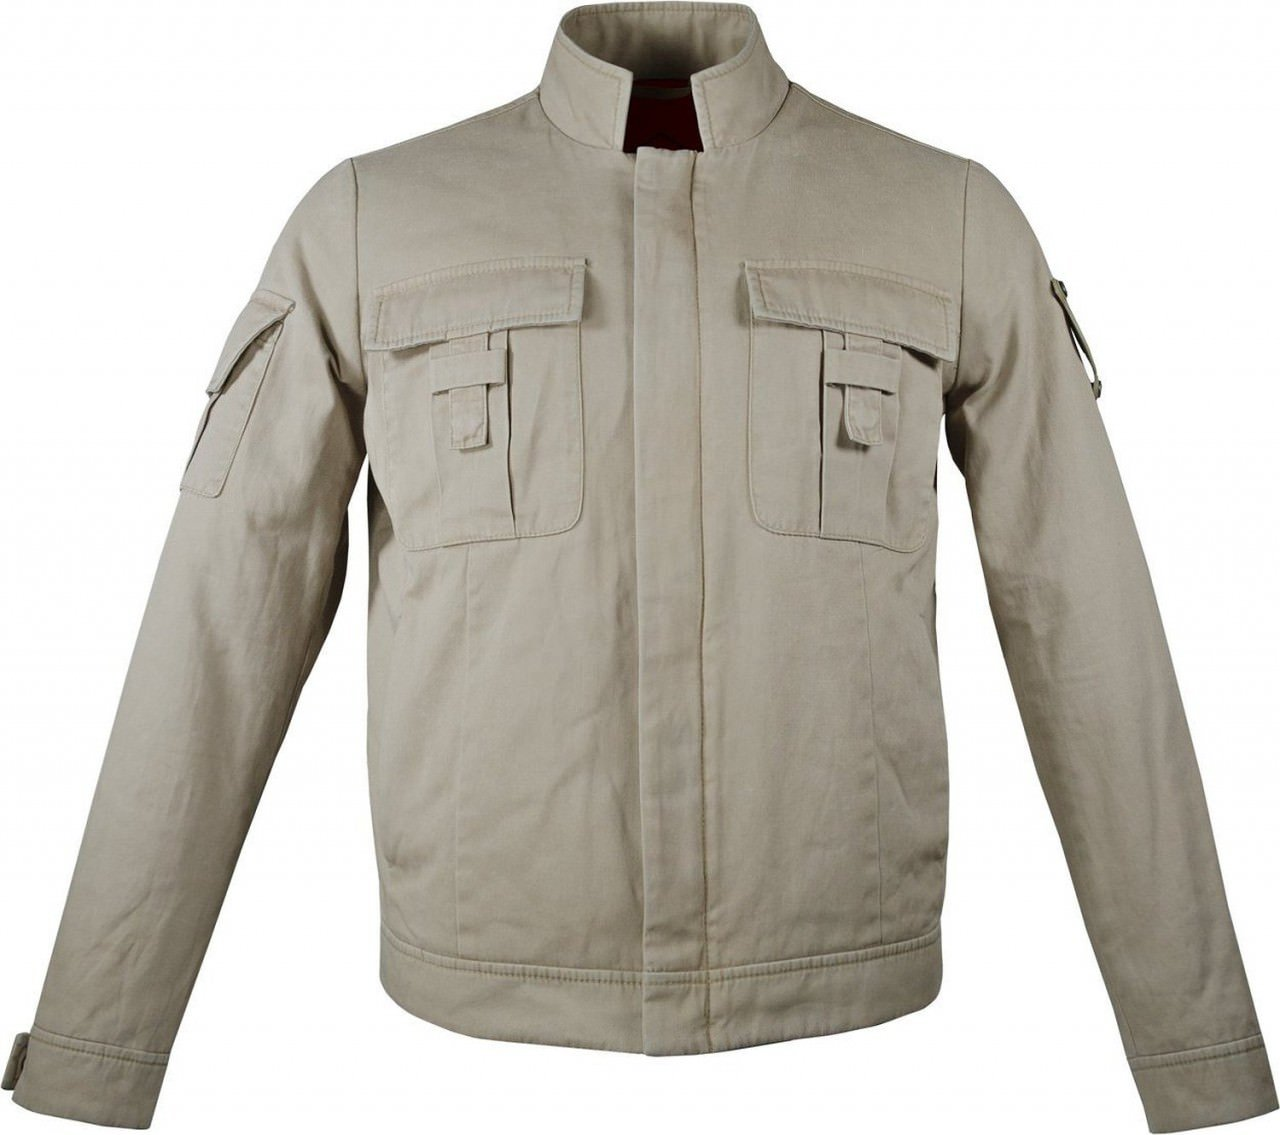 Mens Skywalker Cotton Jacket | Mens Cotton Jackets For Summer | Beige Luke Skywalker Jacket, 2XL